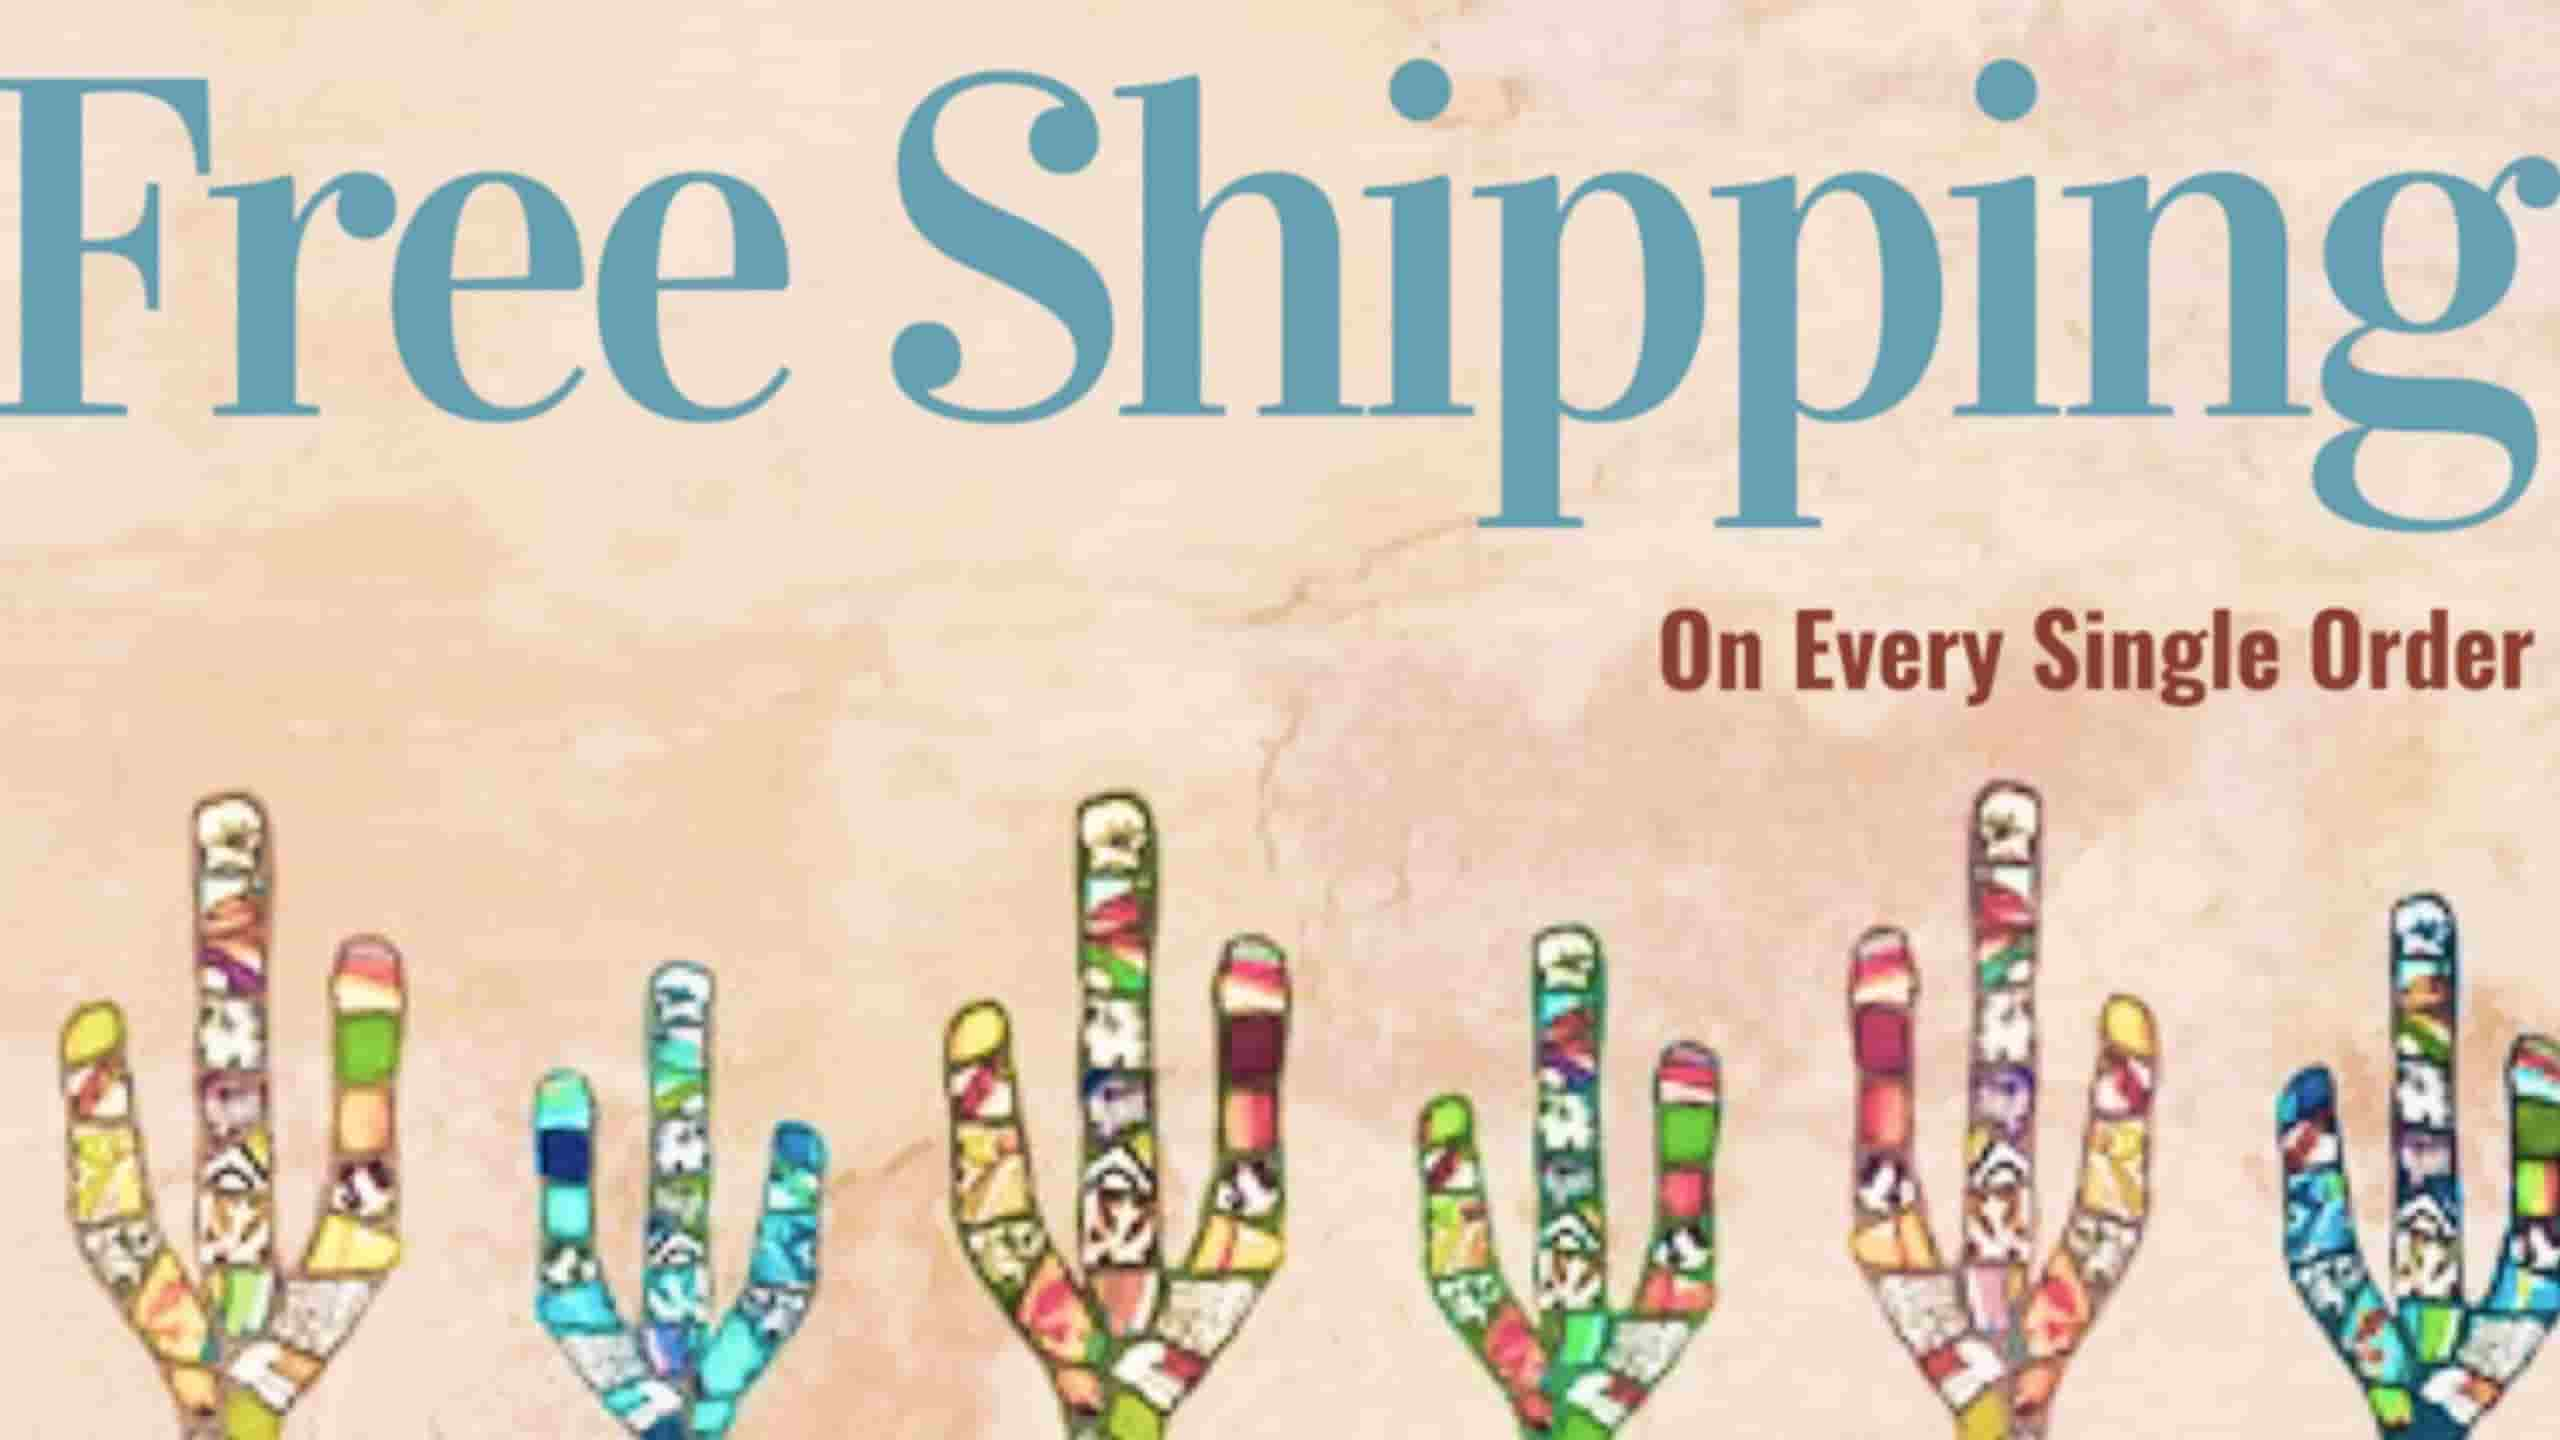 Free Shipping On Every Single Order